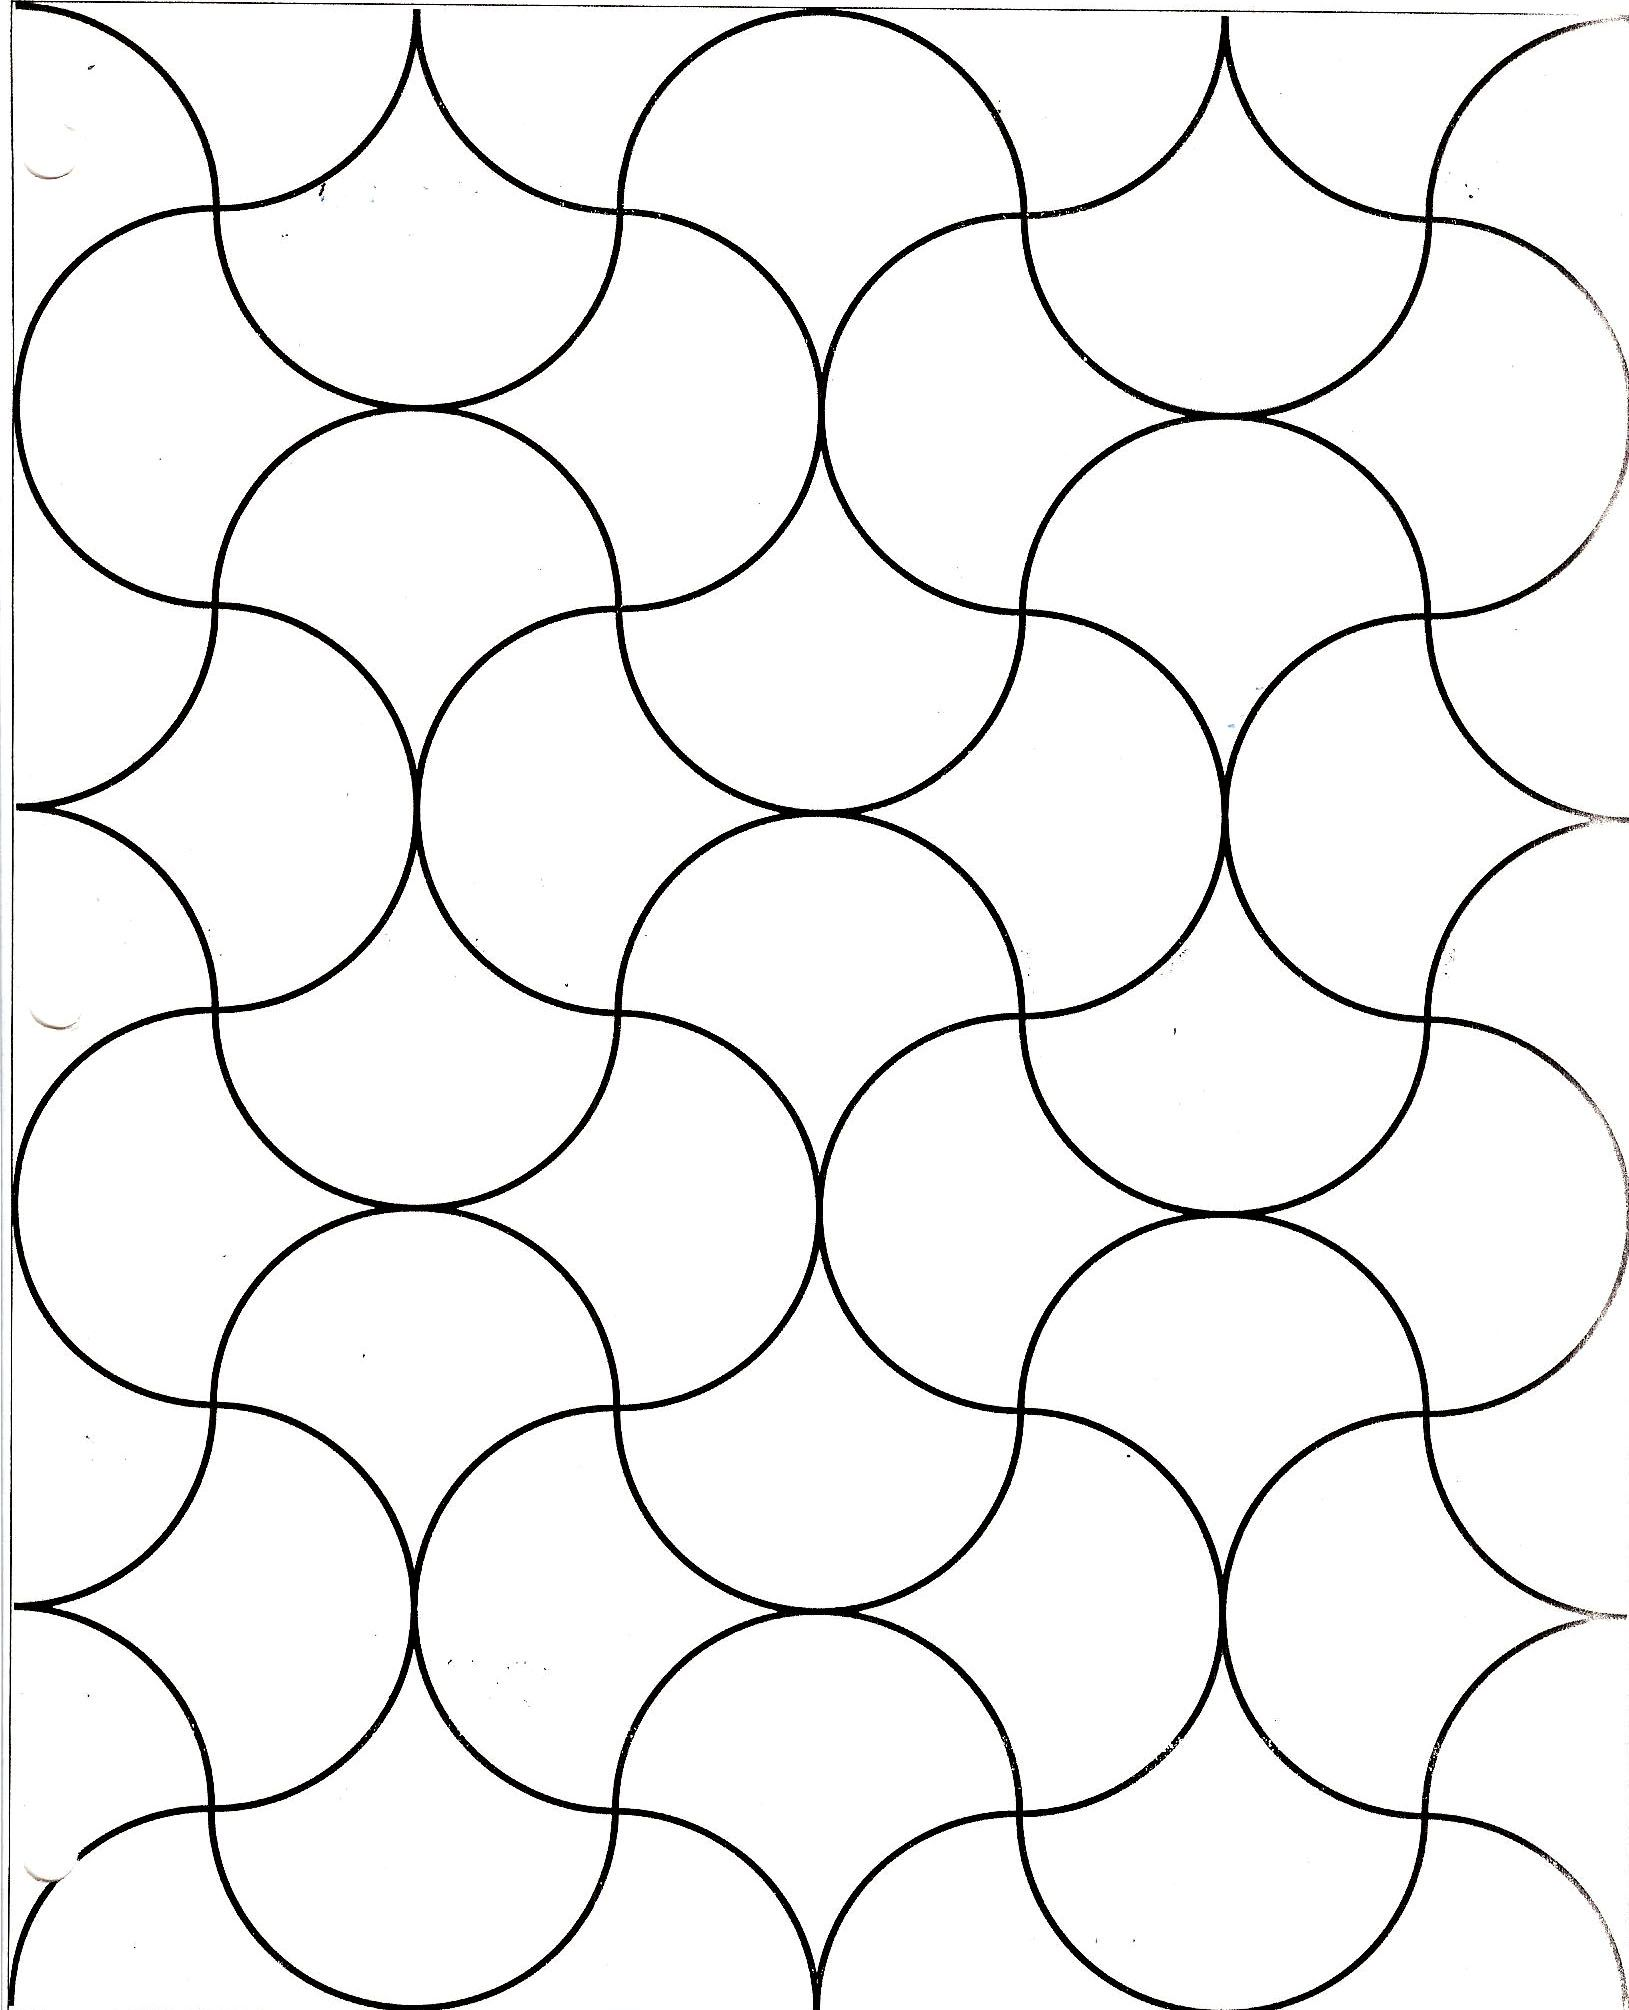 Clamshell grid for a quilt design how to make and